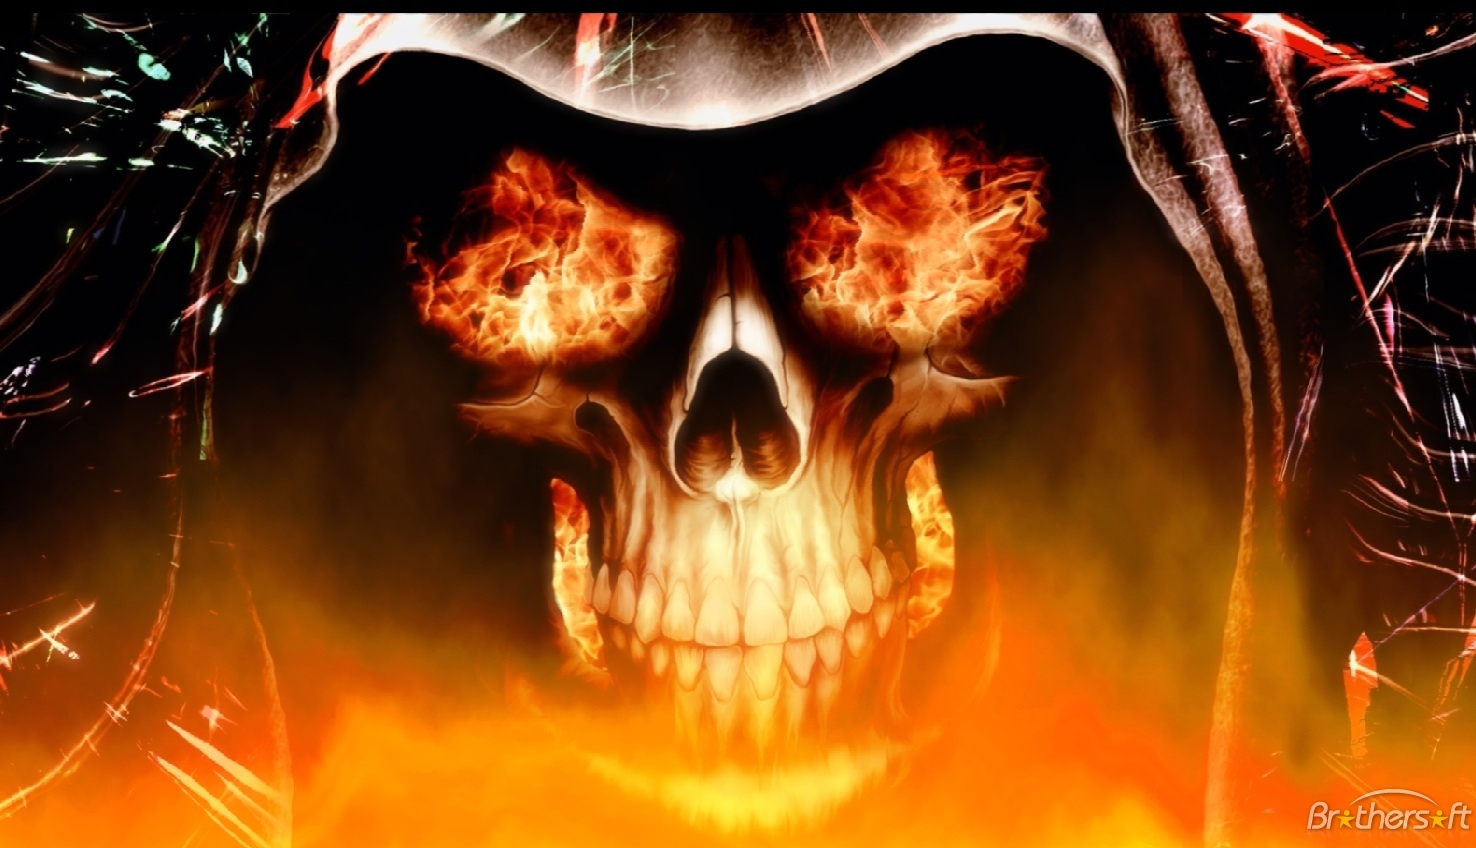 Fire Skull Animated Wallpaper Fire Skull Animated Wallpaper 1476x848